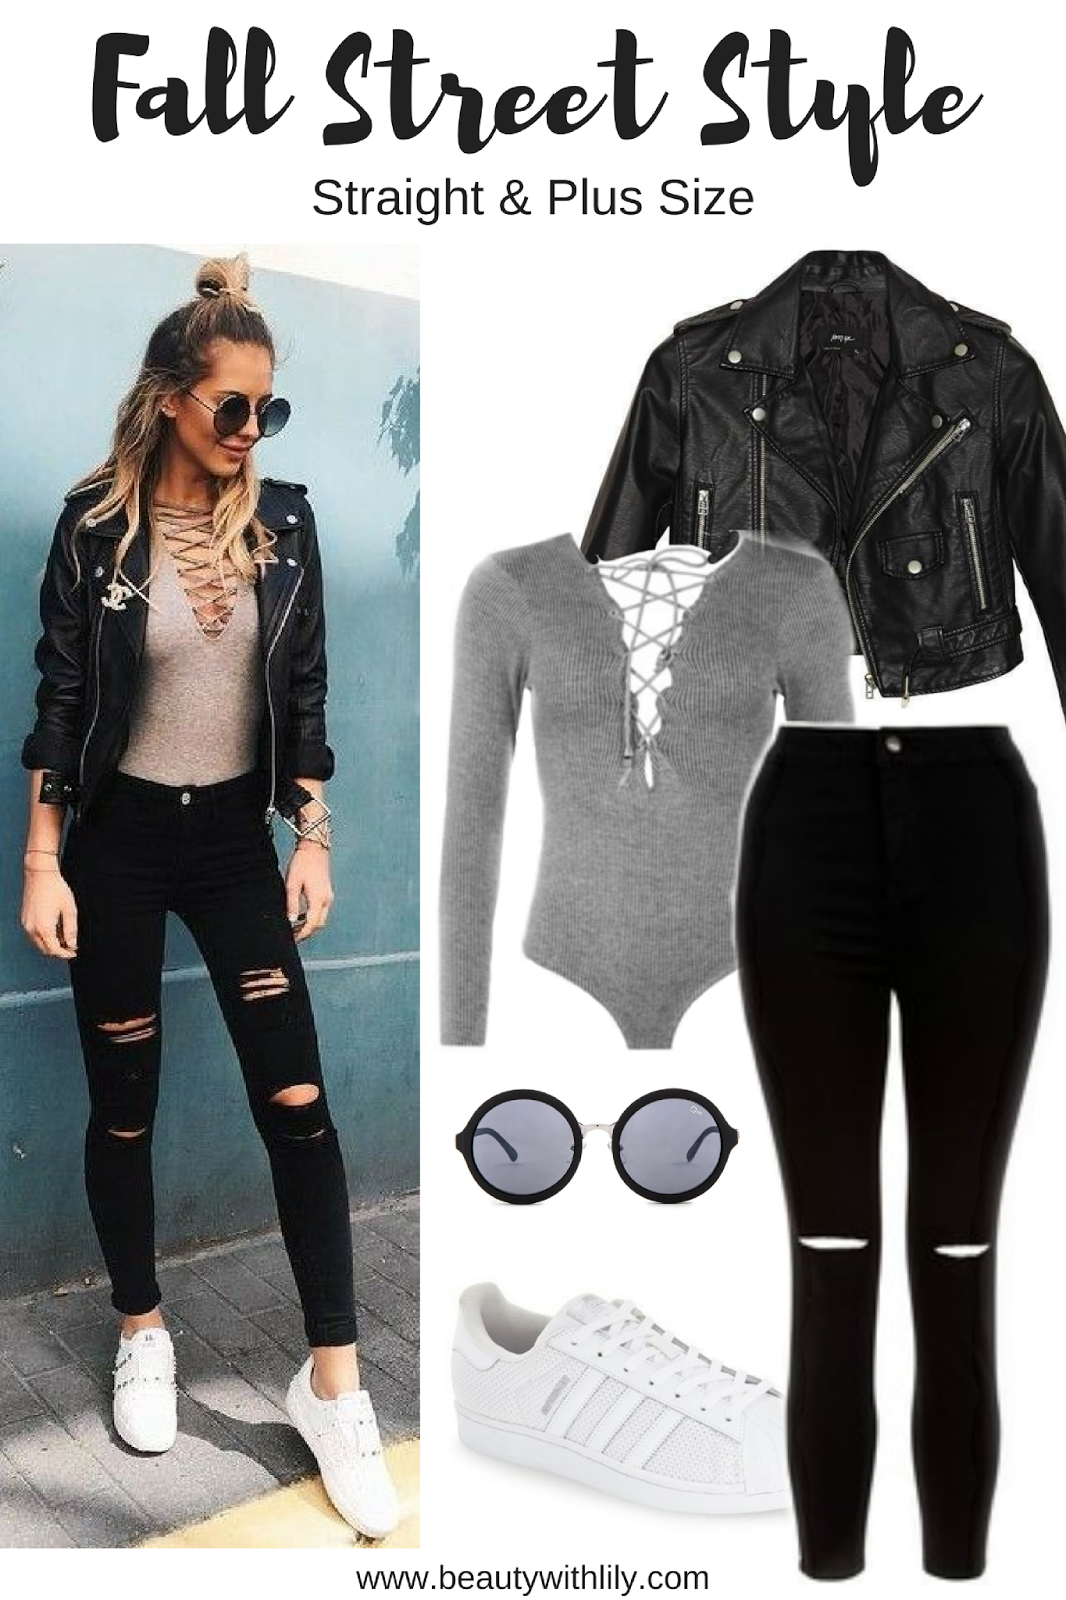 Affordable Fall Street Style Outfit   Trendy, edgy and casual outfit that will look great on anyone!